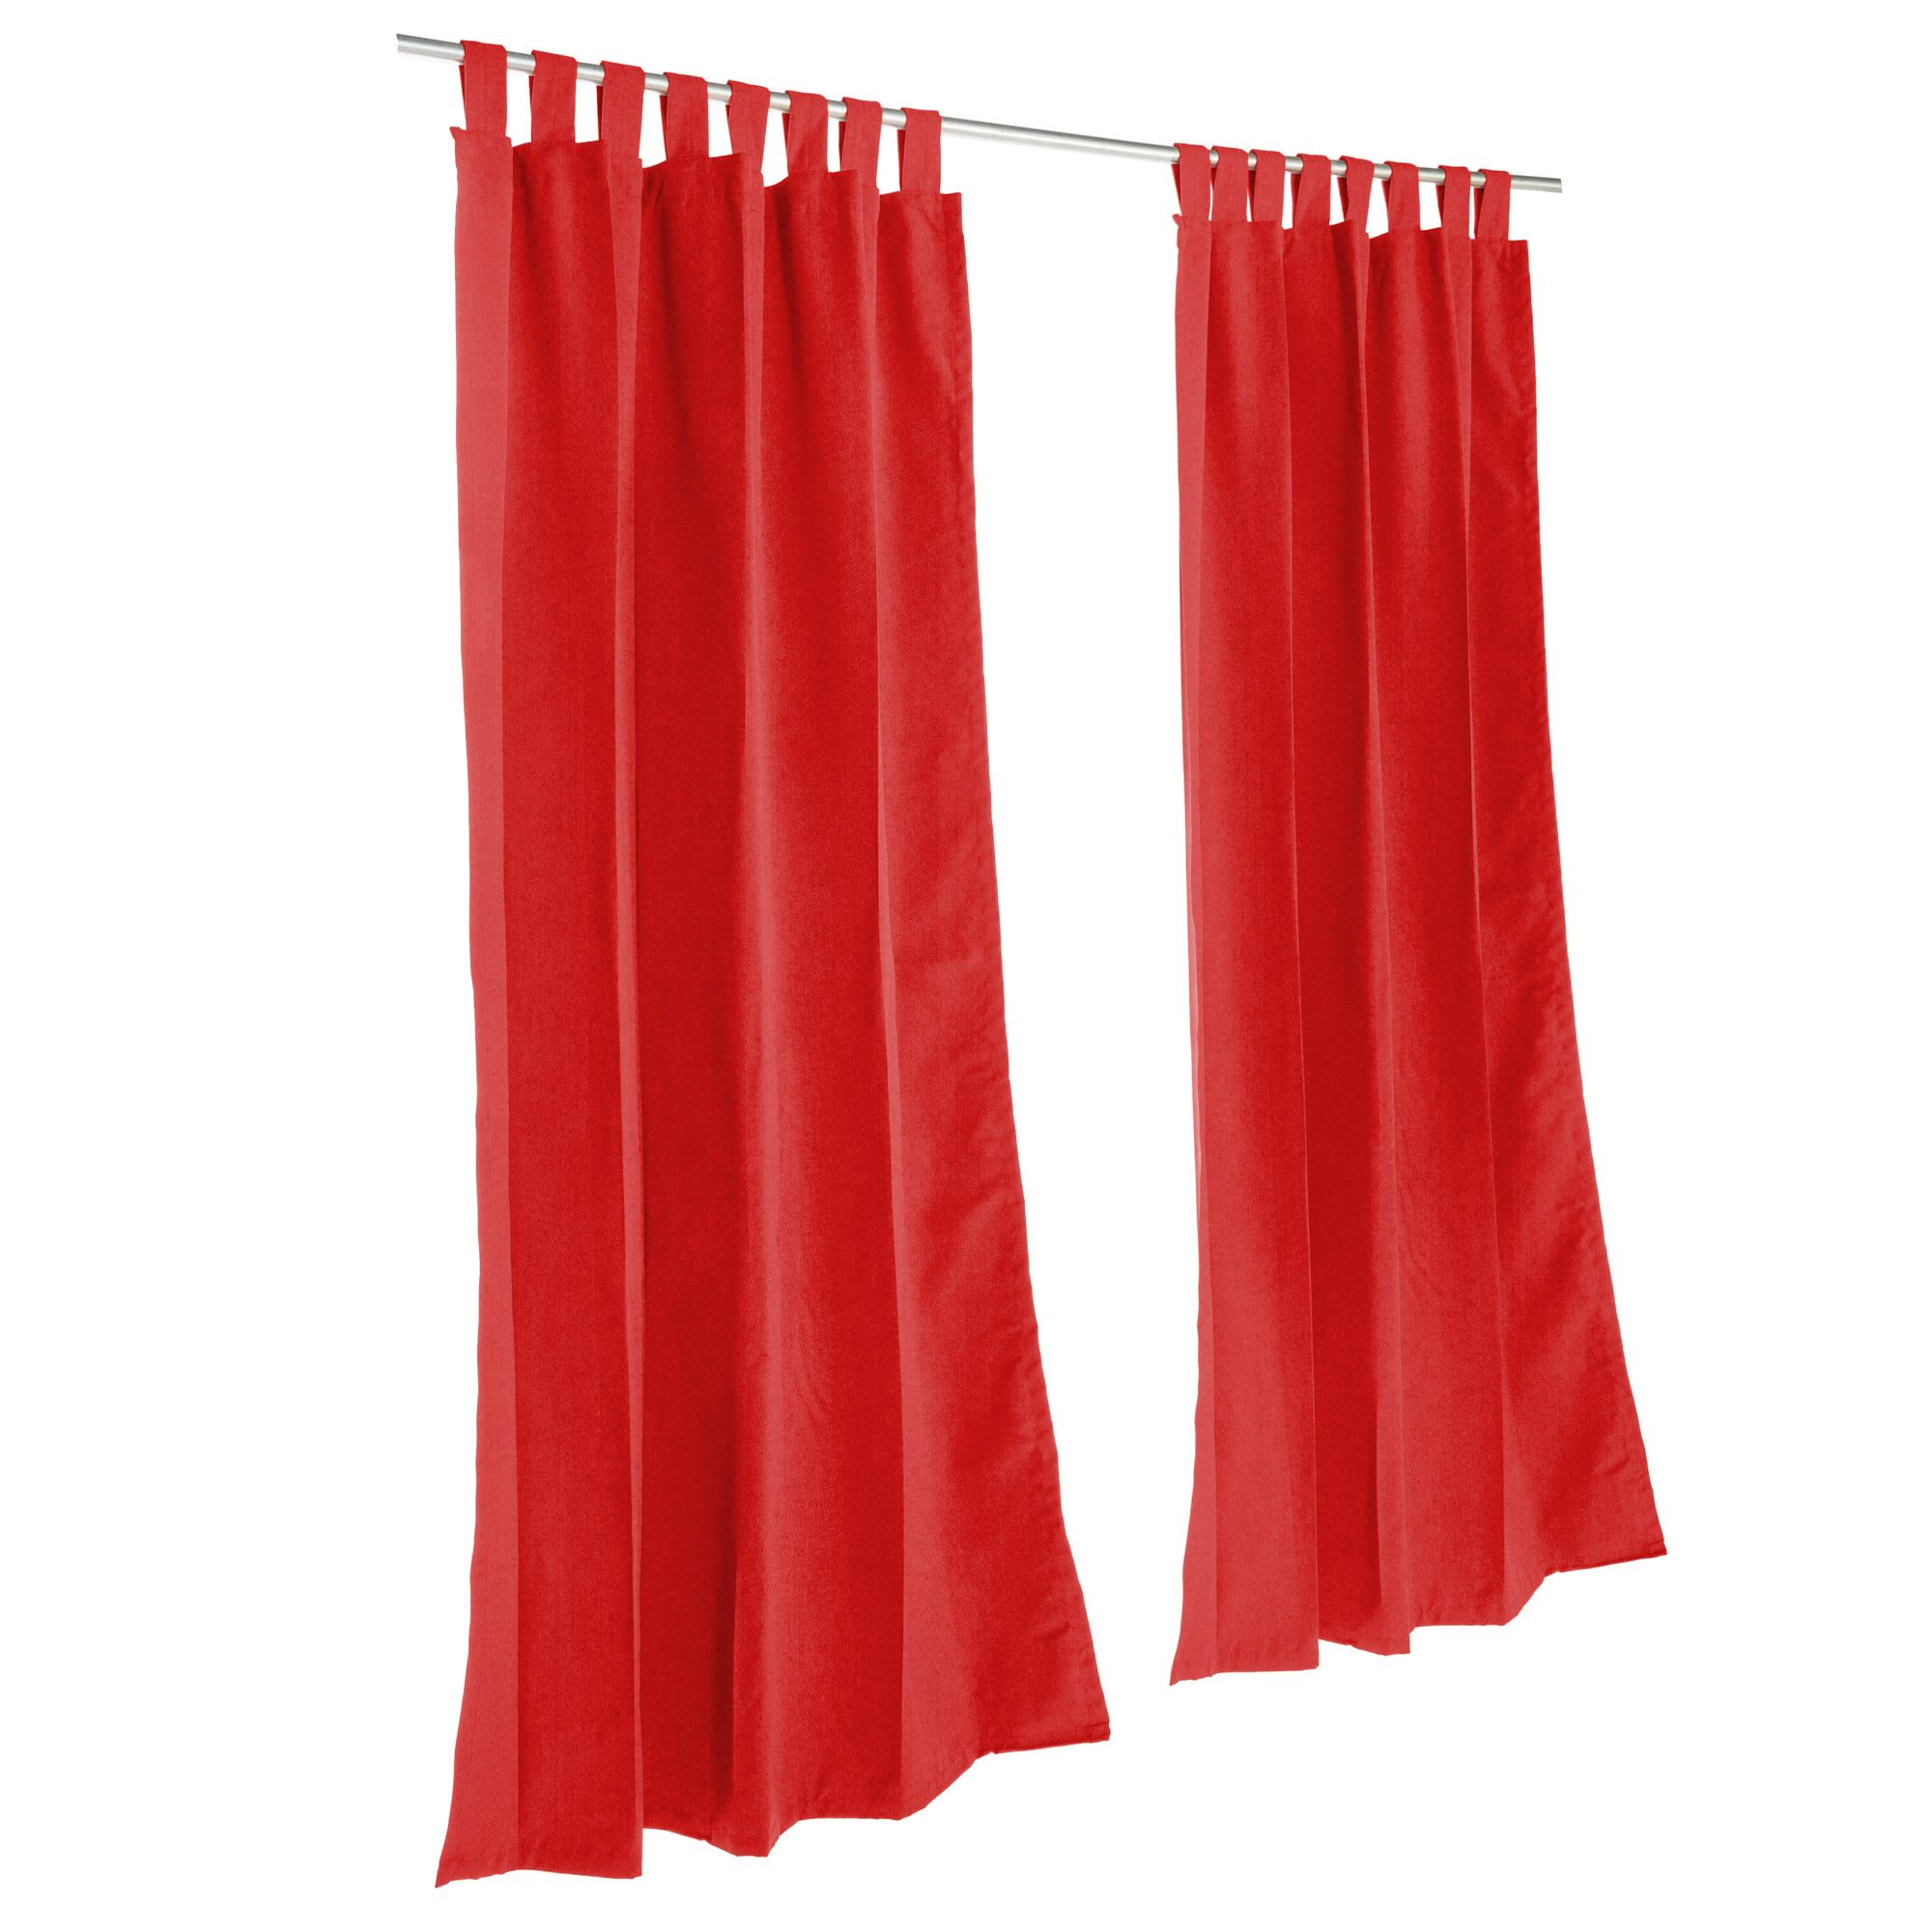 Sunbrella Canvas Jockey Red Outdoor Curtain with Tabs by Essentials by DFO